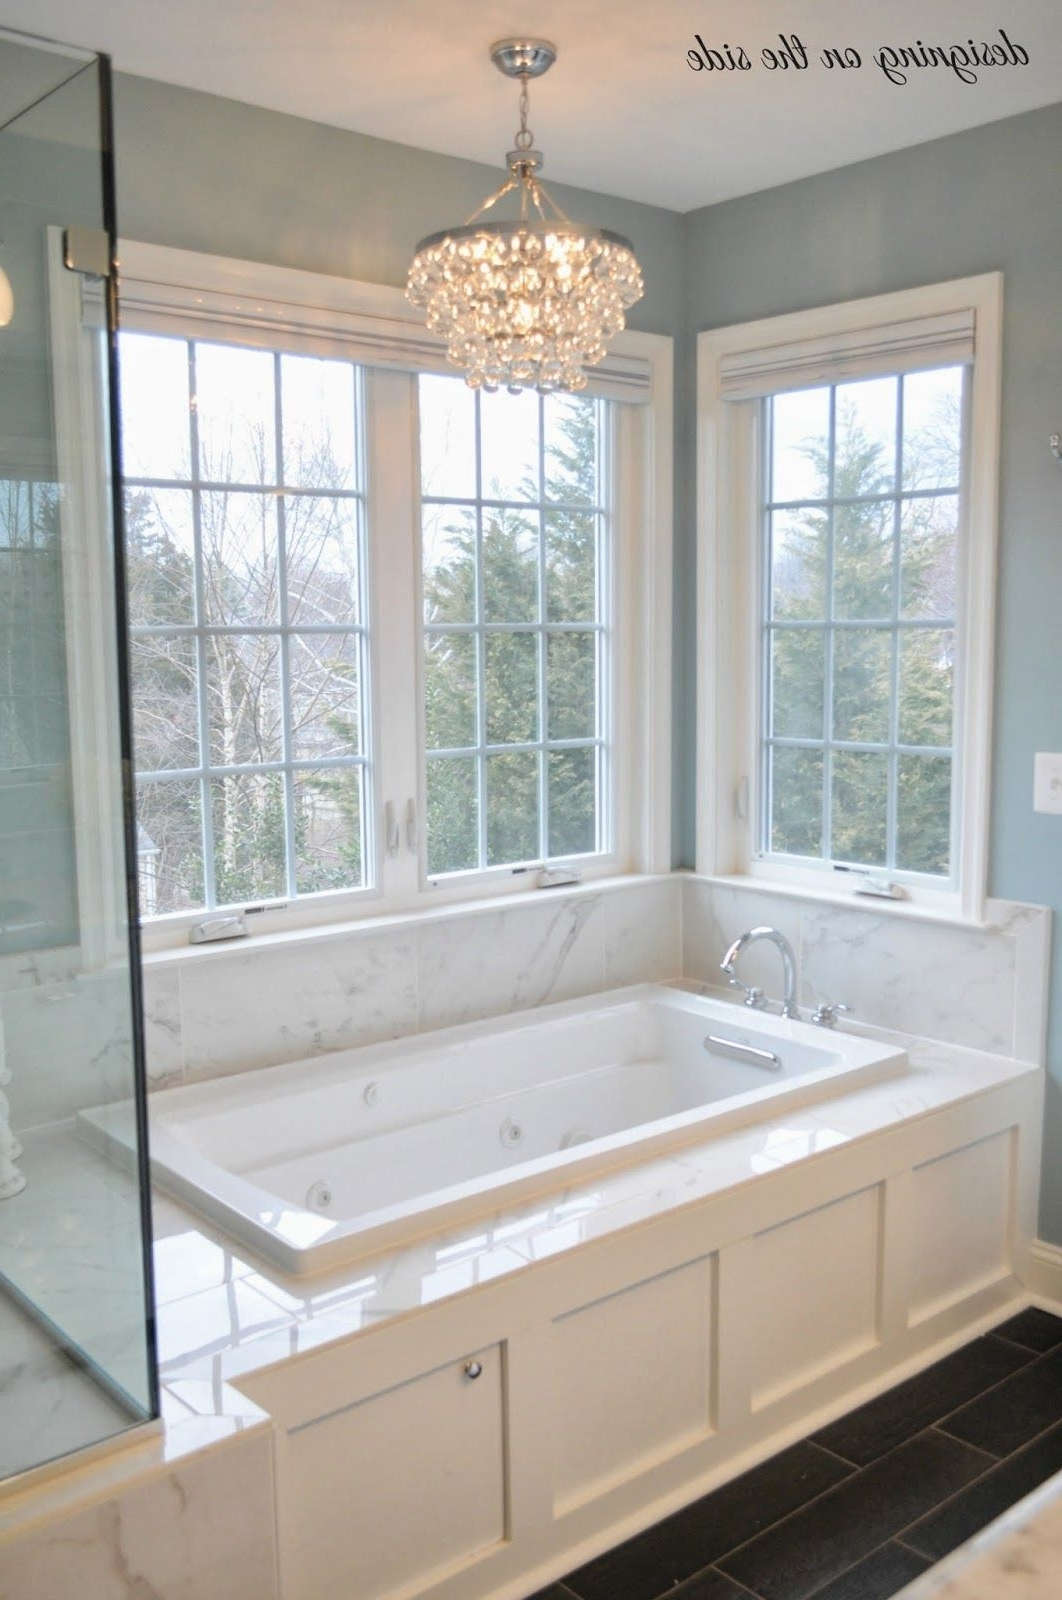 Crystal Bathroom Chandelier With Regard To Recent Master Bath, Marble Tile, Sw Rain, Crystal Chandelier, Tile That (View 8 of 20)